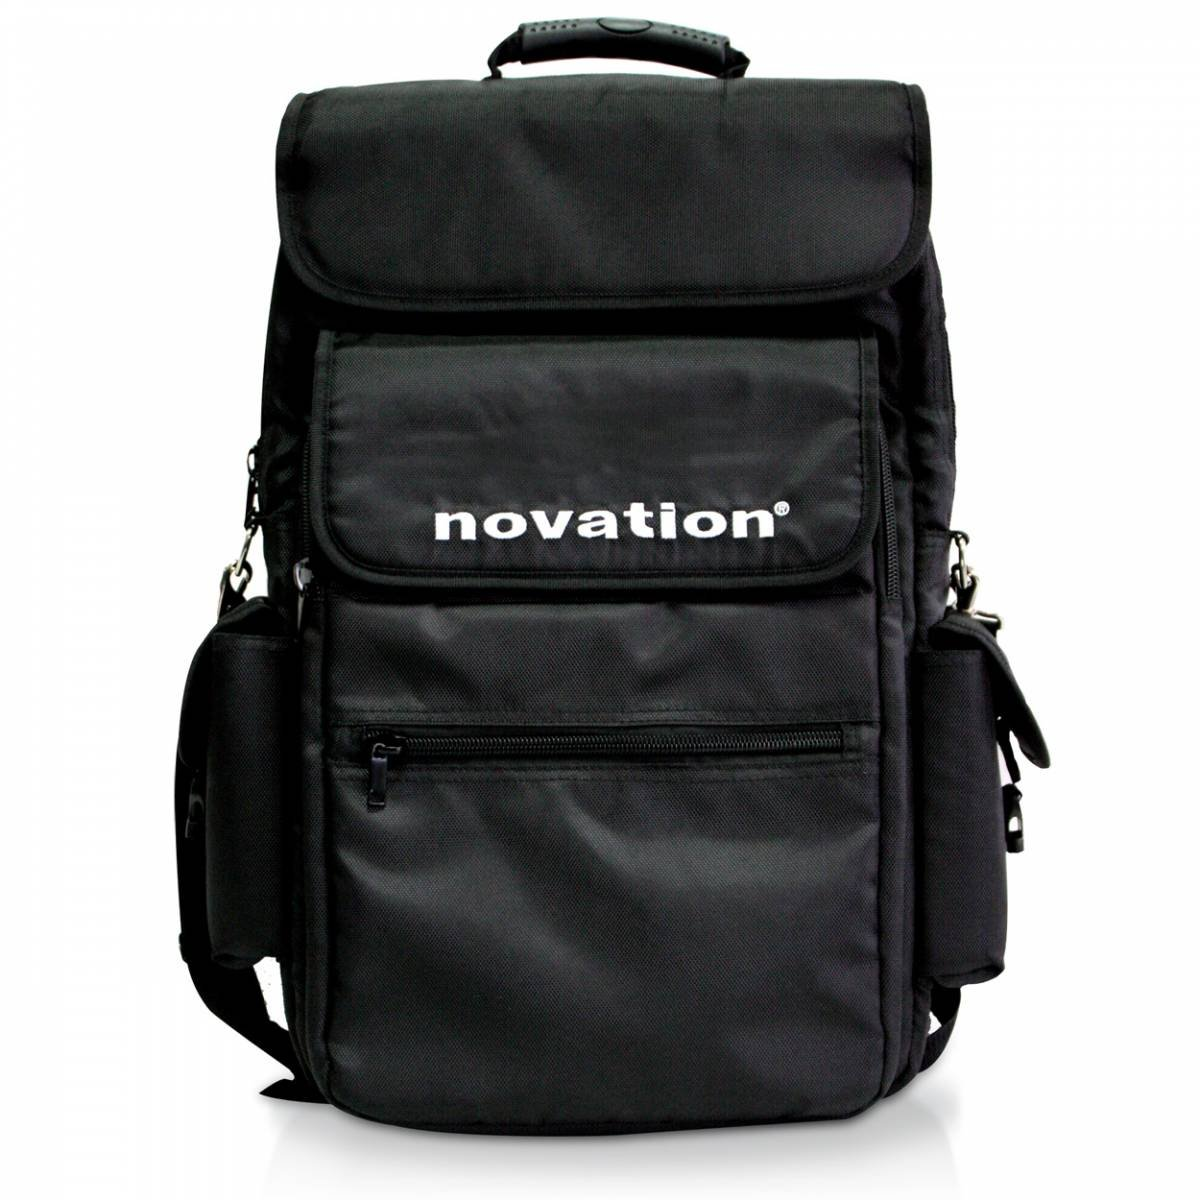 Novation 25 Backpack-Style Soft Carry Case for 25-Key MIDI Controller Keyboards, Black